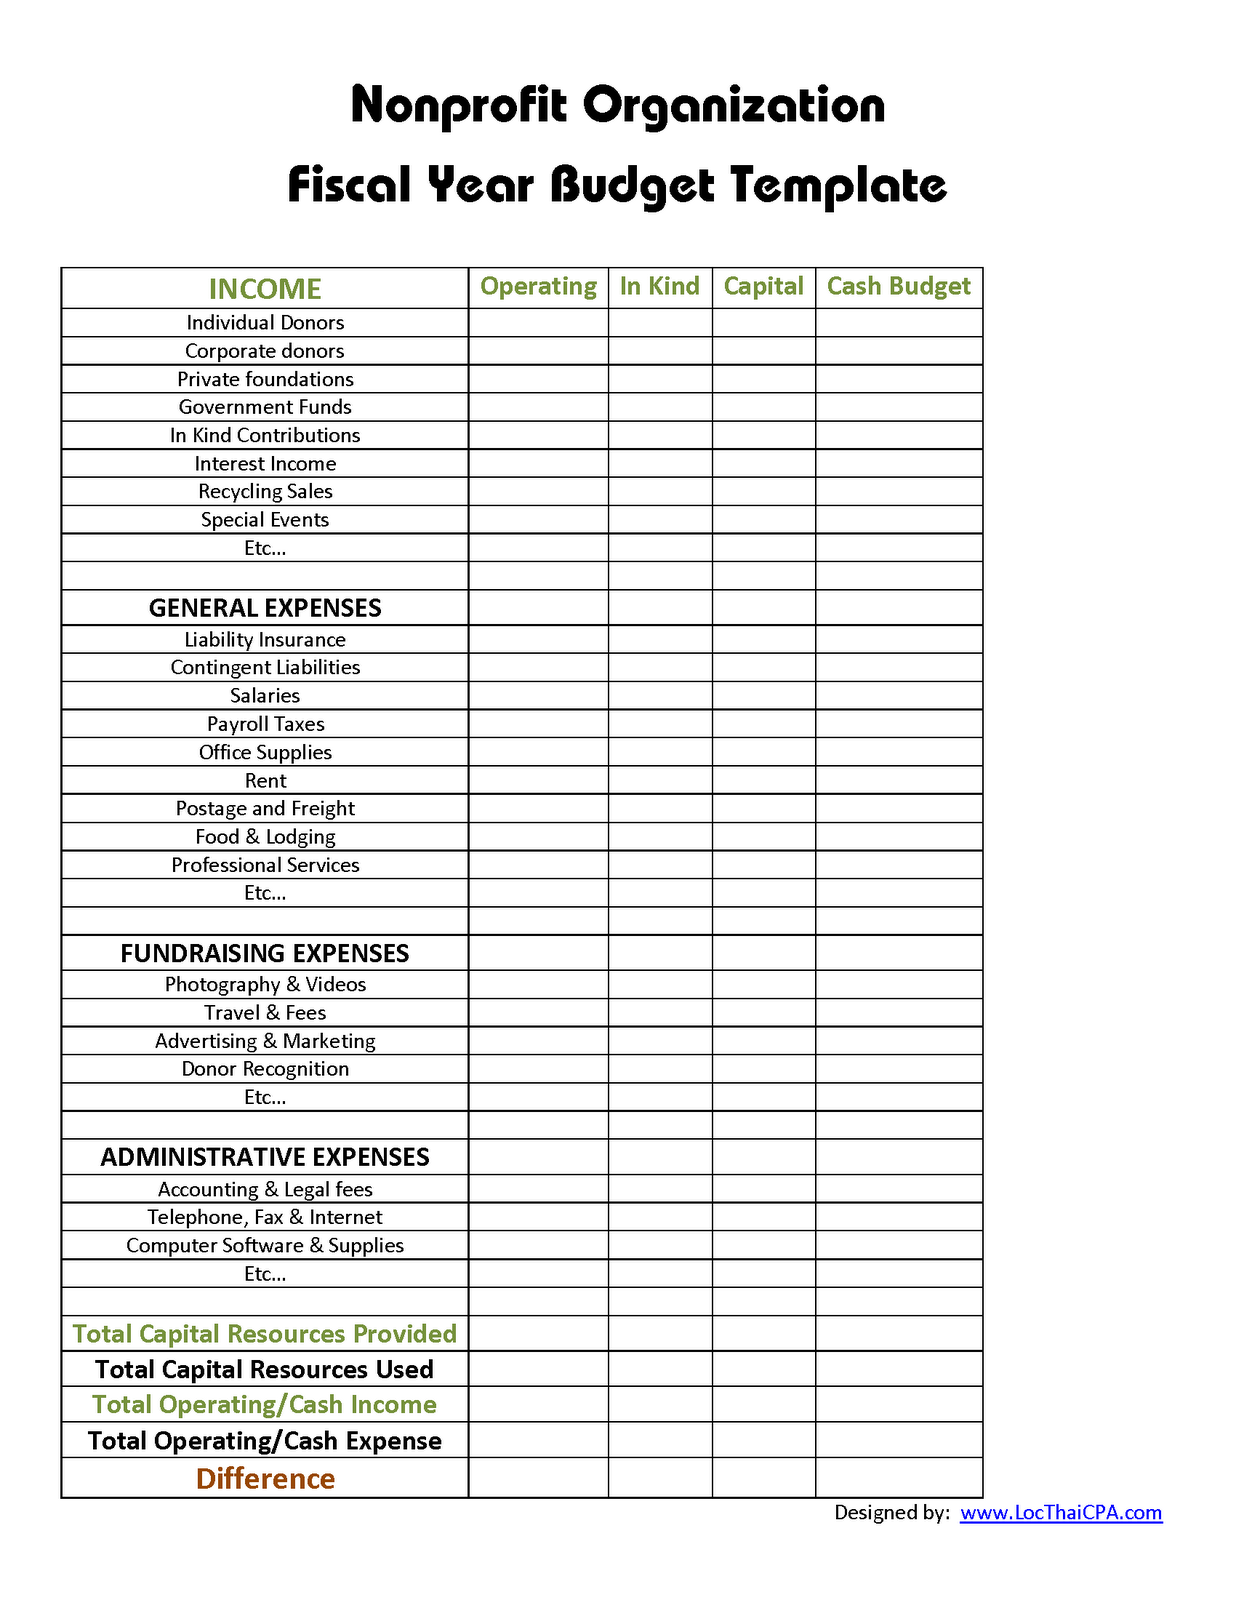 Nonprofit Financial Plan Template Nonprofit Business Plan National - Top 10 business plan templates